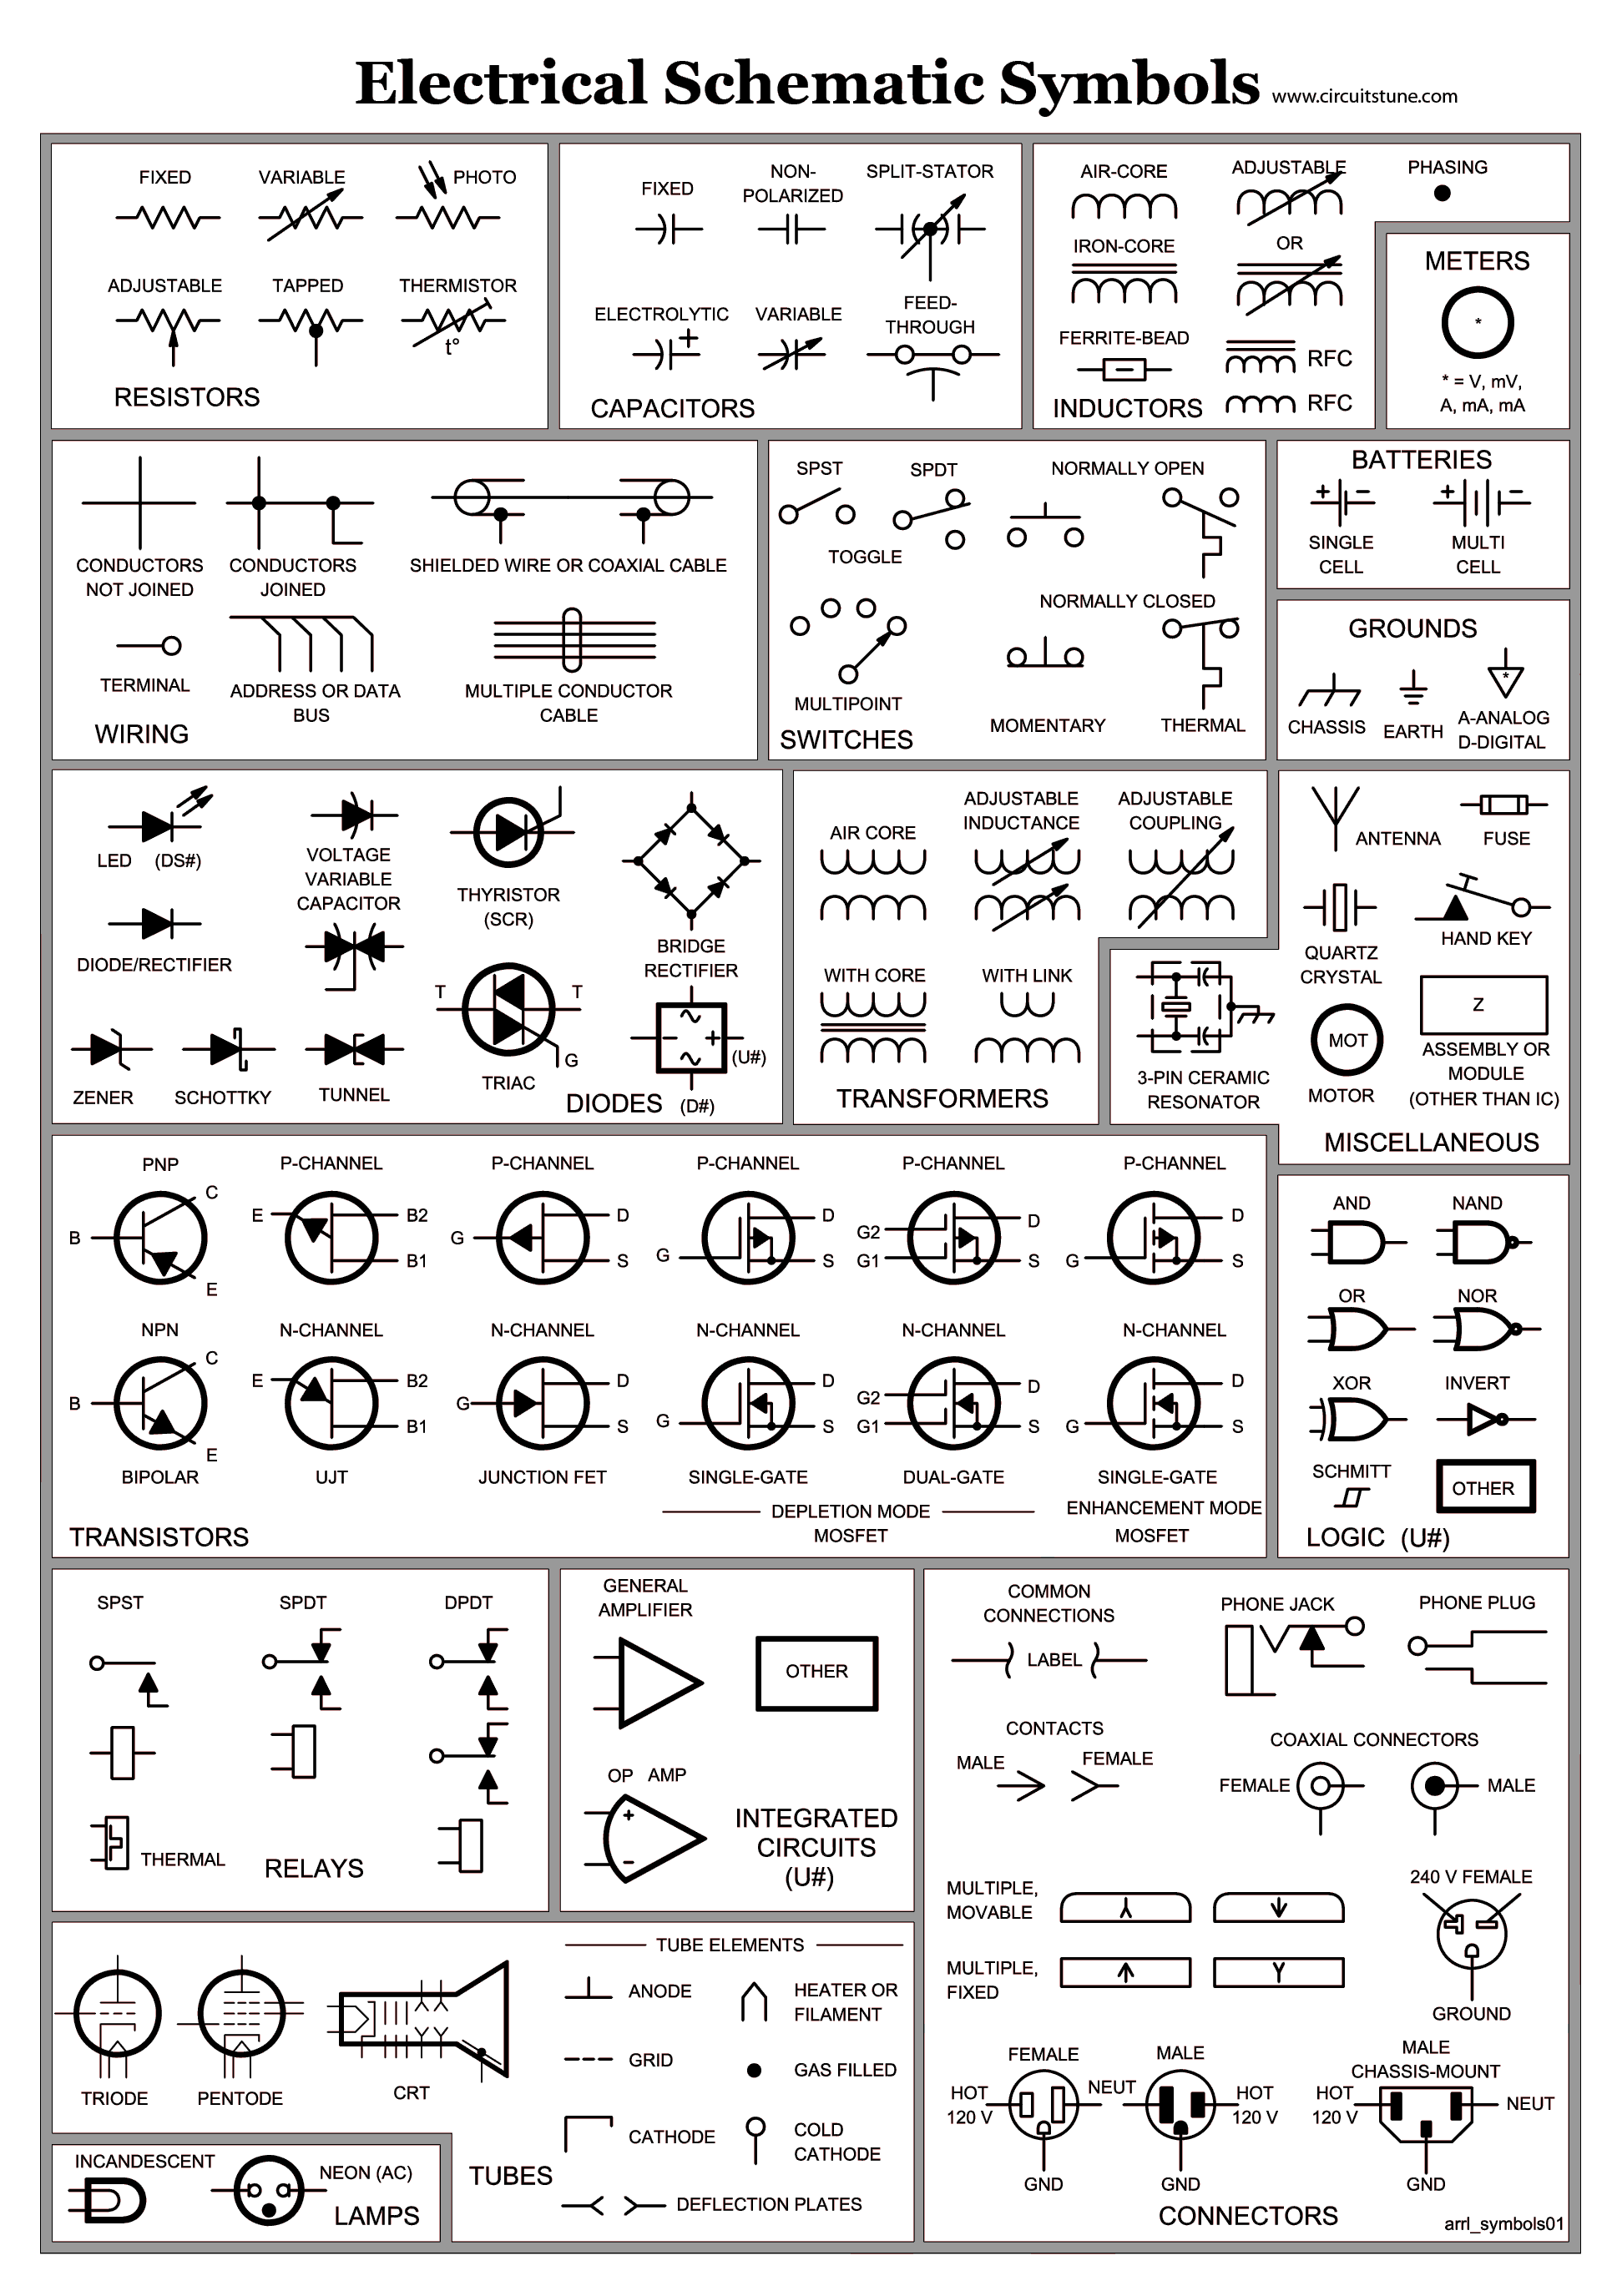 a65d176364692d2ebe913b58a654cfc3 electrical schematic symbols wire diagram symbols automotive electrical engineering wiring diagrams at aneh.co